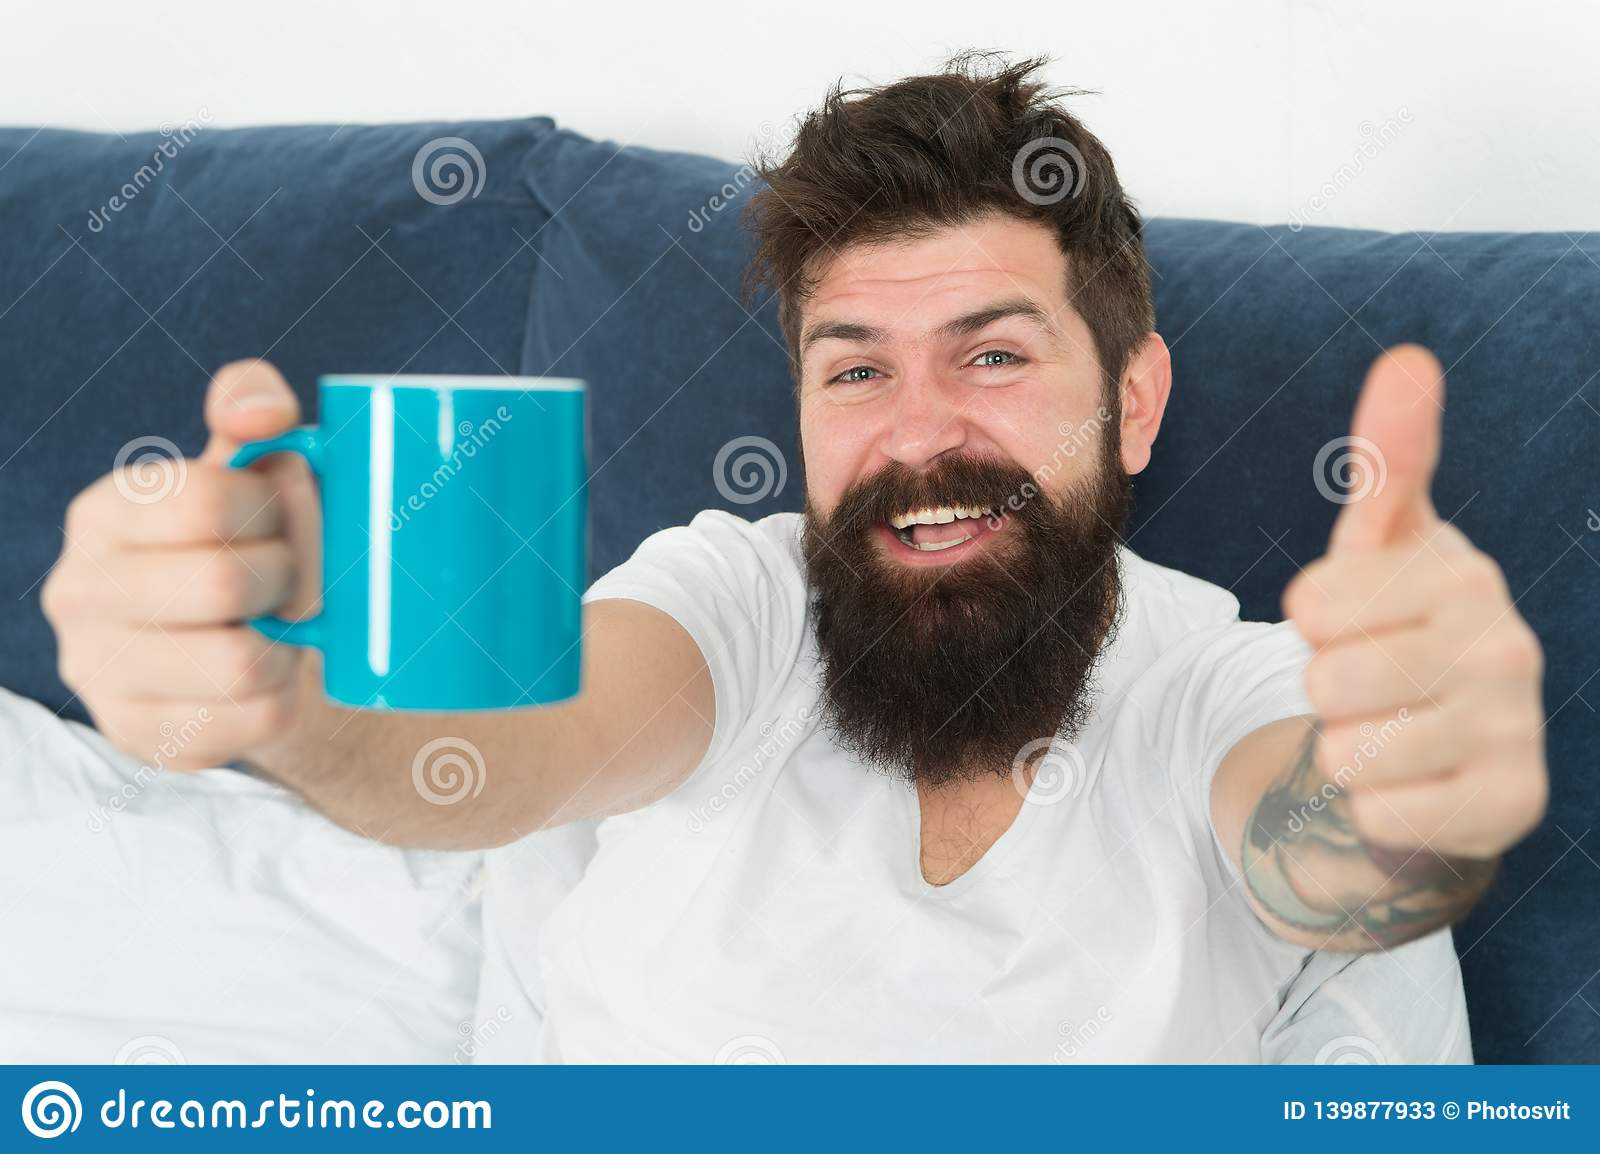 Coffee fills you with energy. Good gay begins from cup of coffee. Coffee affects body. Man handsome hipster relaxing on